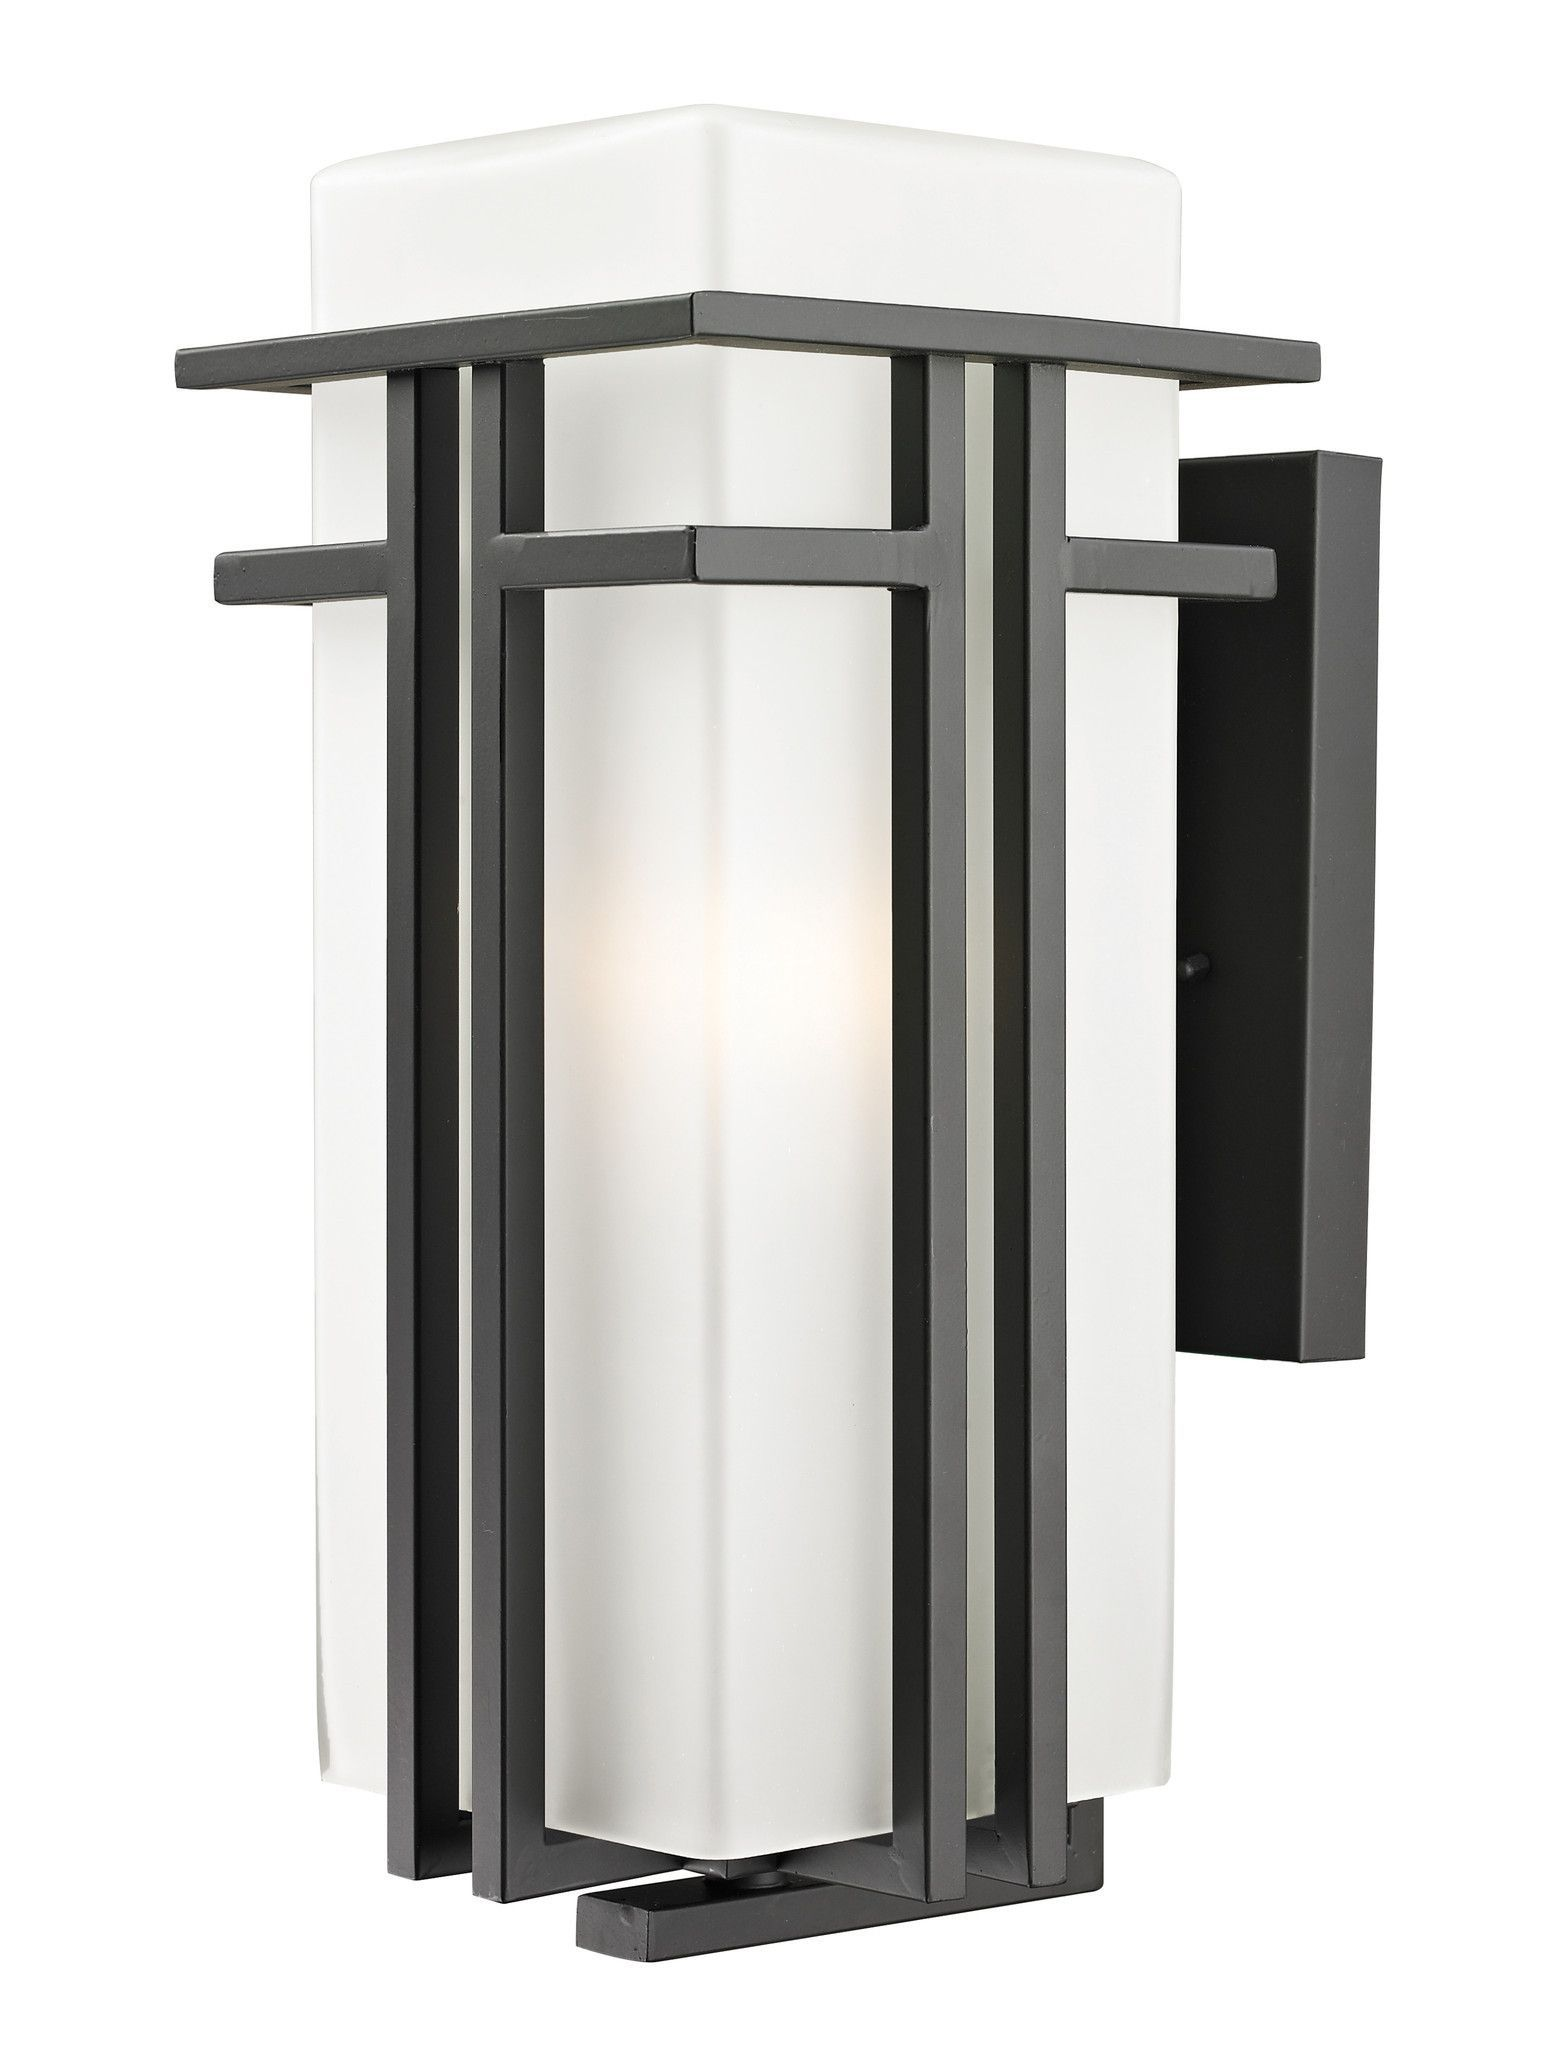 Zlite abbey borbz outdoor light products